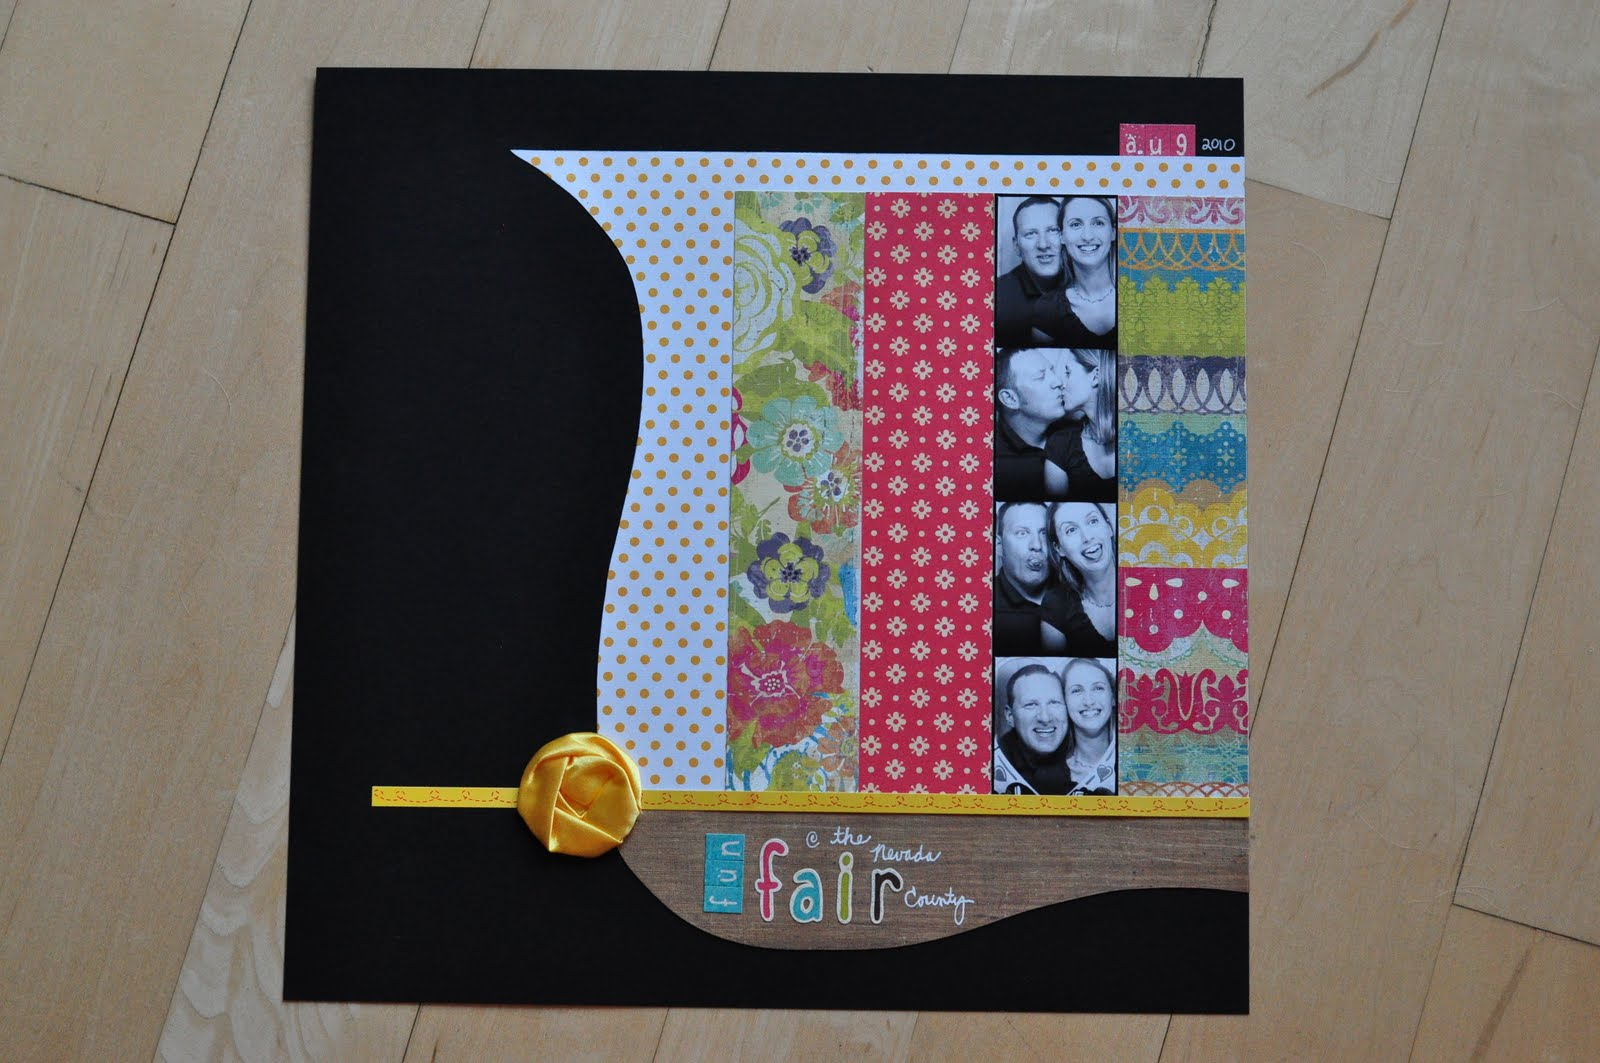 Scrapbook ideas niagara falls - This Layout Features Papers Stickers And Embellishments From The September Scrapbook Circle Kit The Only Thing I Had To Pull From My Existing